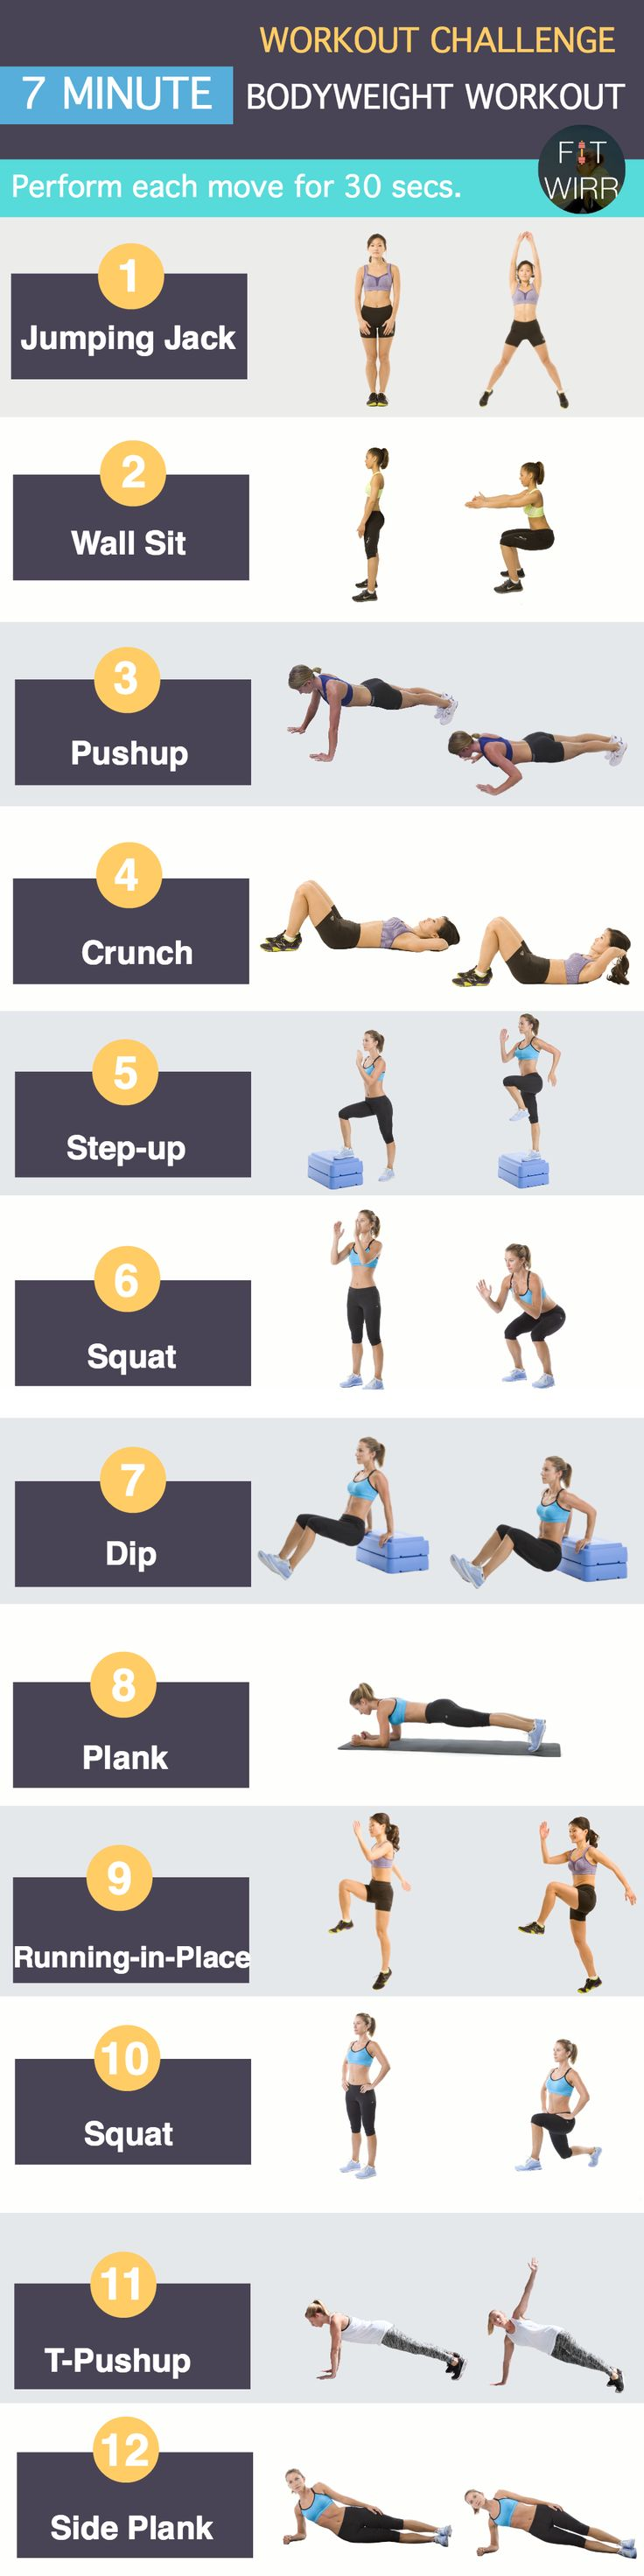 7 MINUTE of 12 EXERCISE BodyWeight HIIT Workout Routine